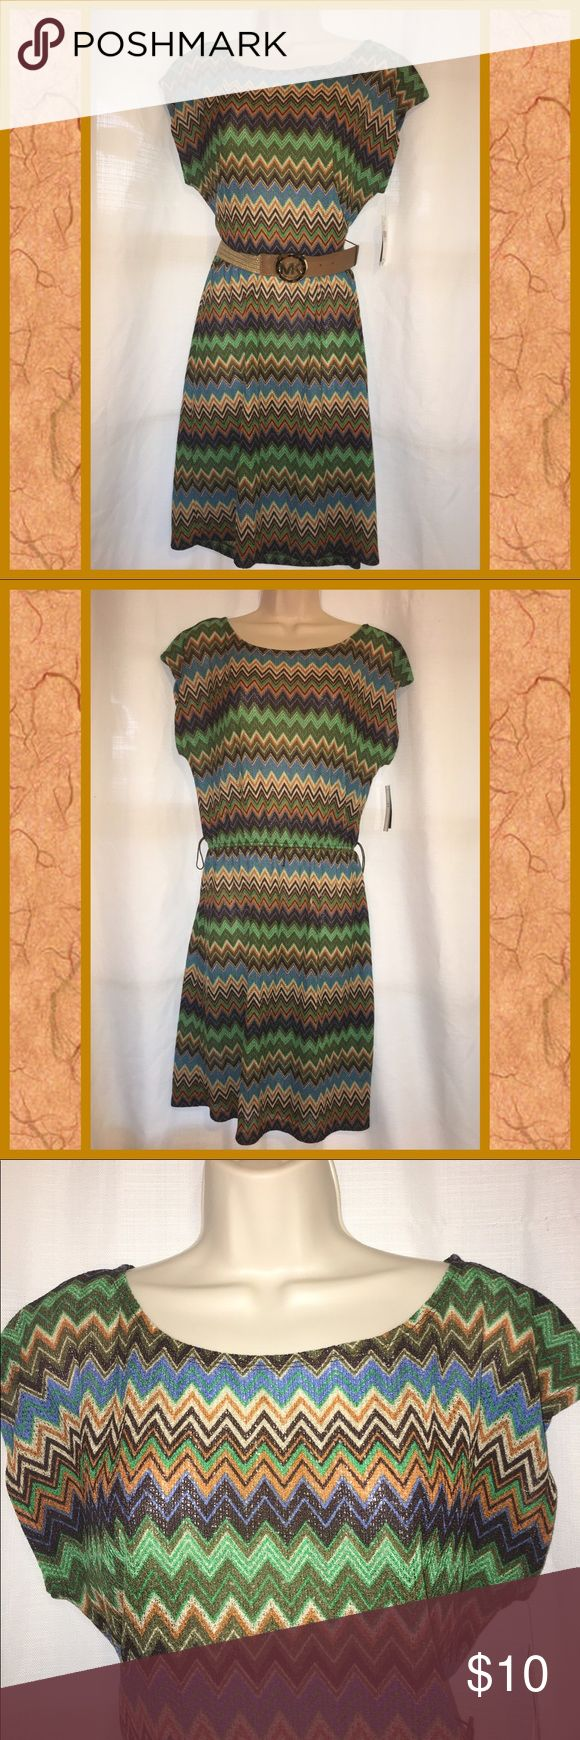 """😺Chevron Print dress😺 😽Size 10 stretchy chevron print dress😽NWT and sheer so it will need a tank or a slip beneath it😽(Belt NFS)😽Looks great with or without a belt😽Bust measurement is 18"""" pit to pit flat😽Retail price is $60😽 A. Byer Dresses"""